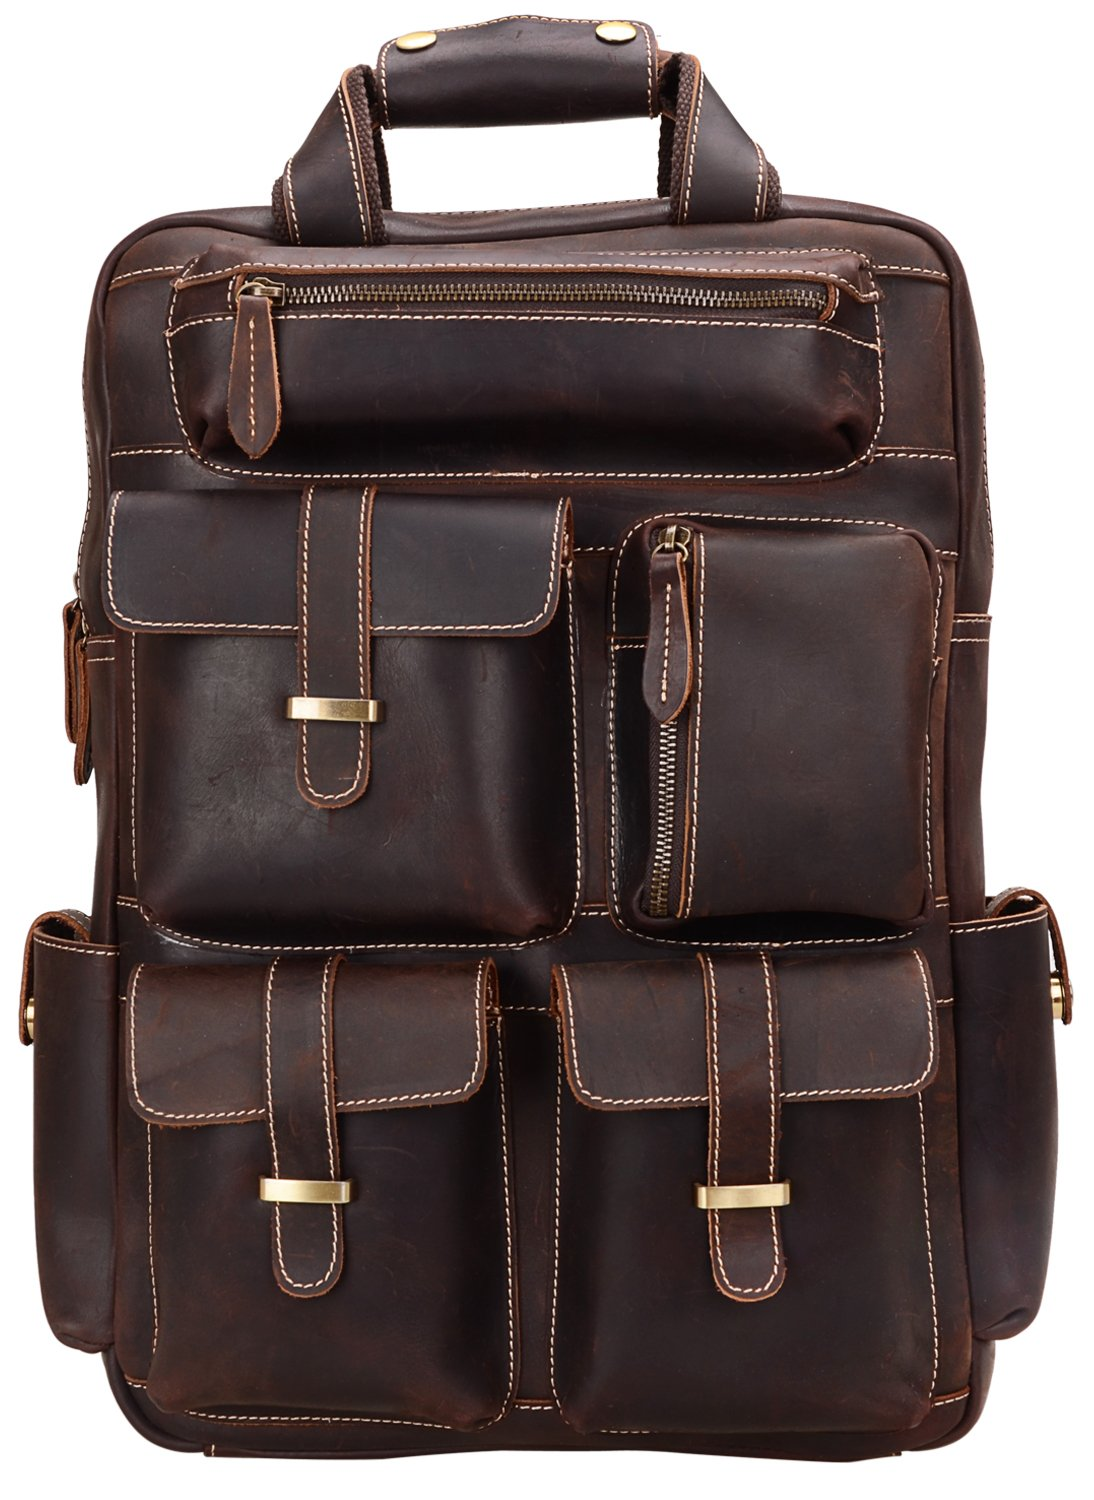 ALTOSY Genuine Leather Backpack Men Vintage Travel Casual School Bag YD8027 (Coffee)